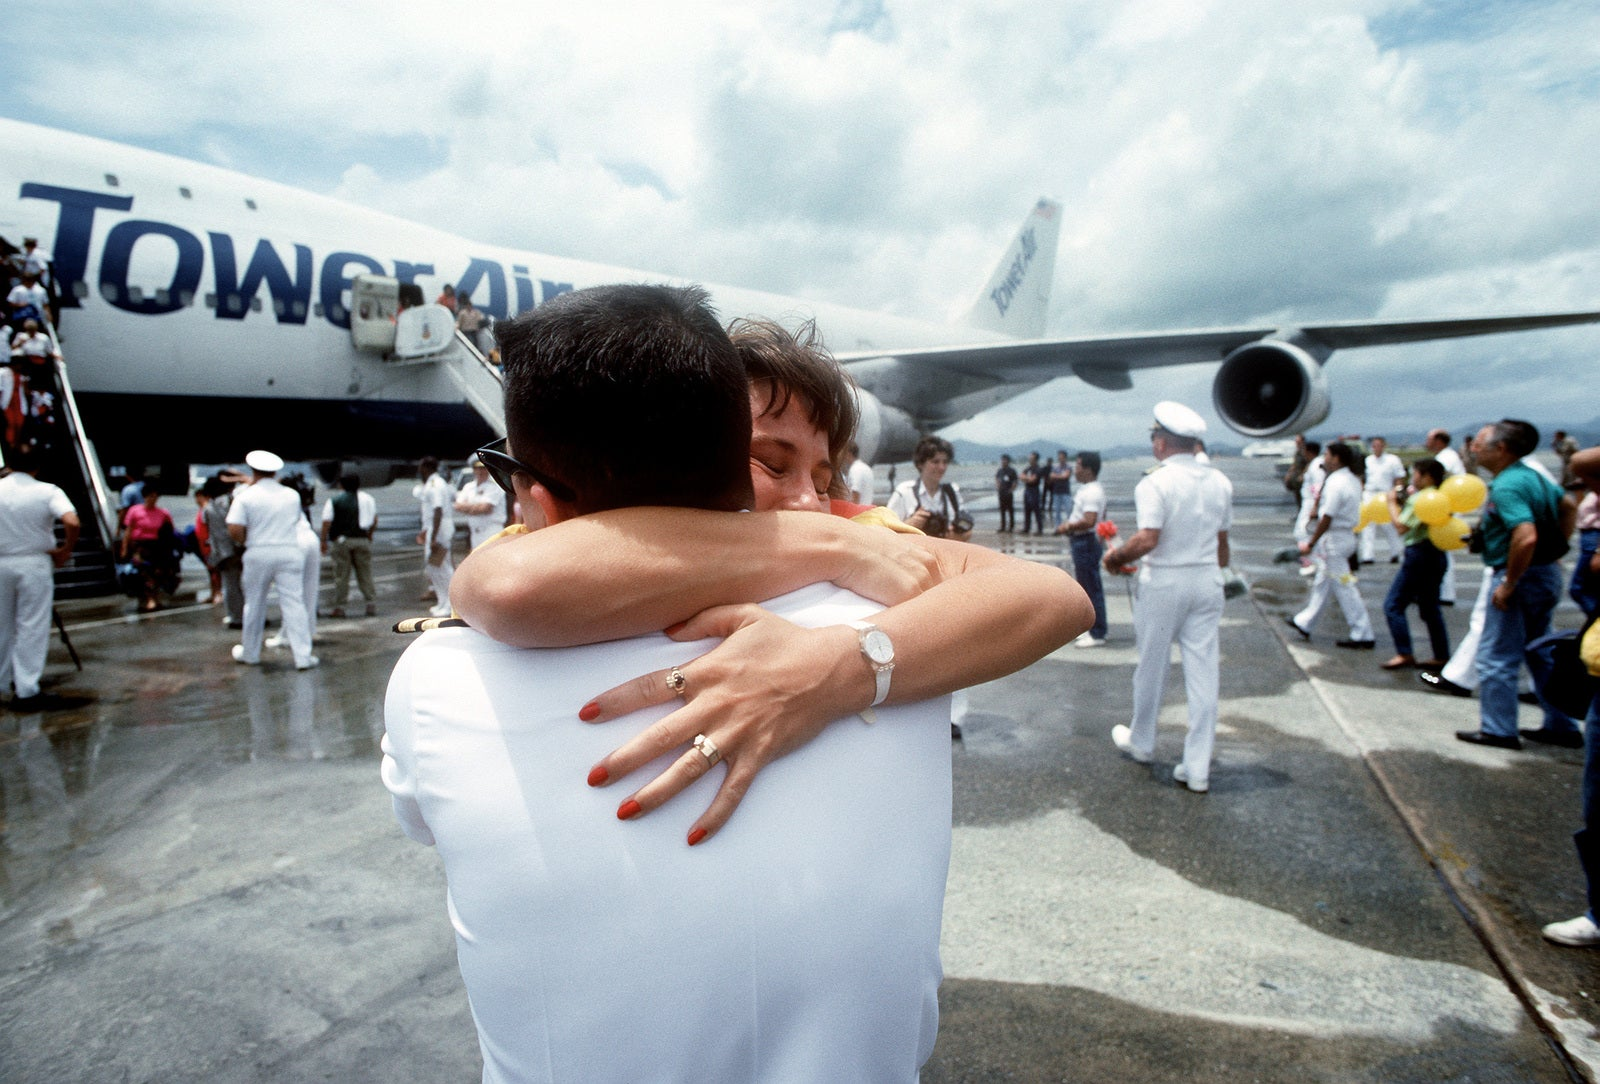 Military love story- A couple reuniting